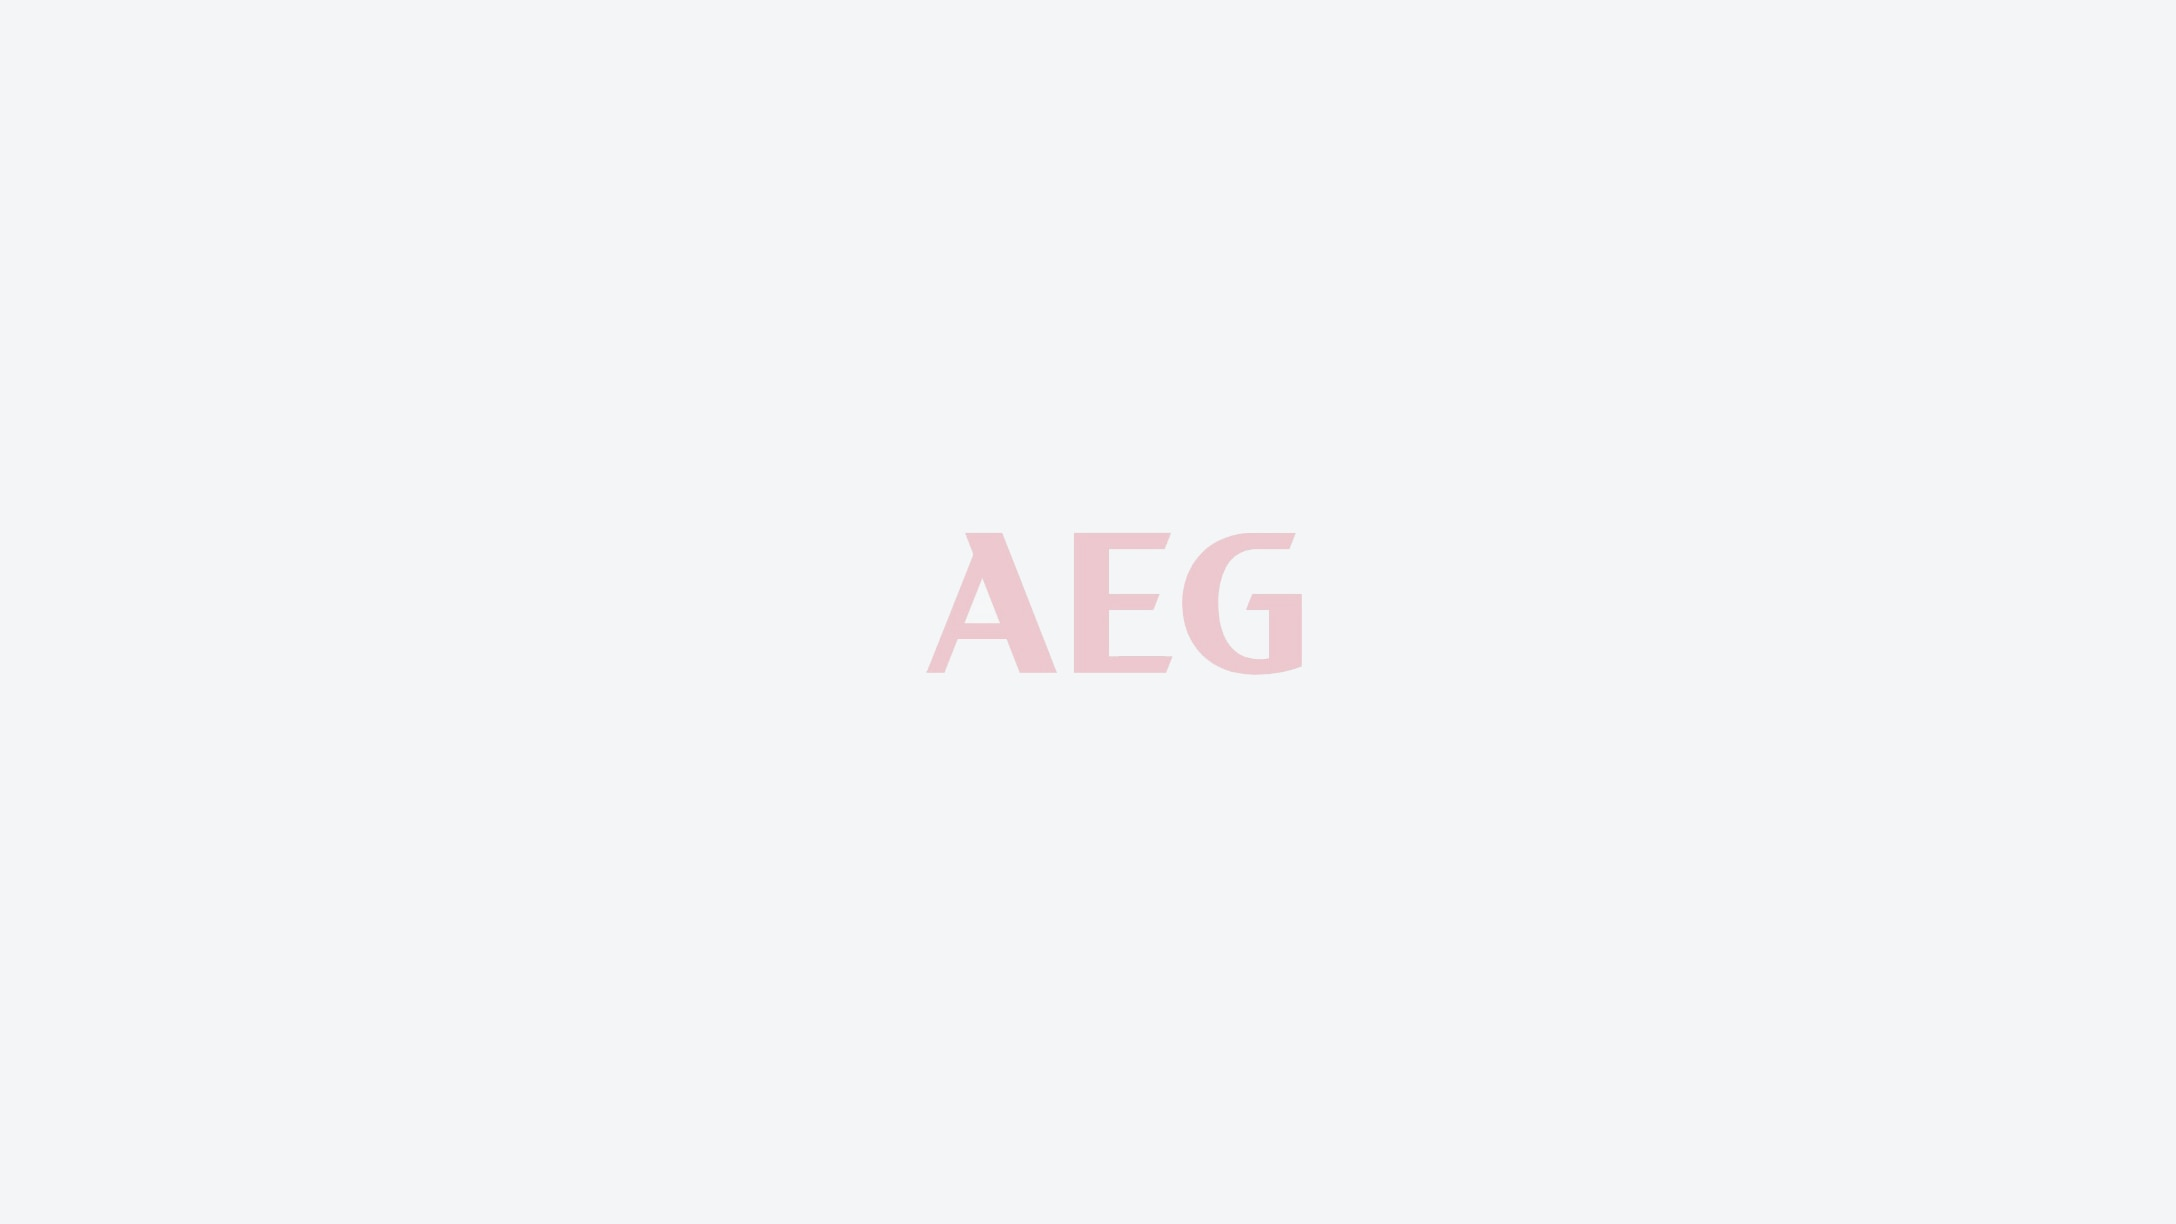 aeg_teaser_hoods-sub-category.jpg